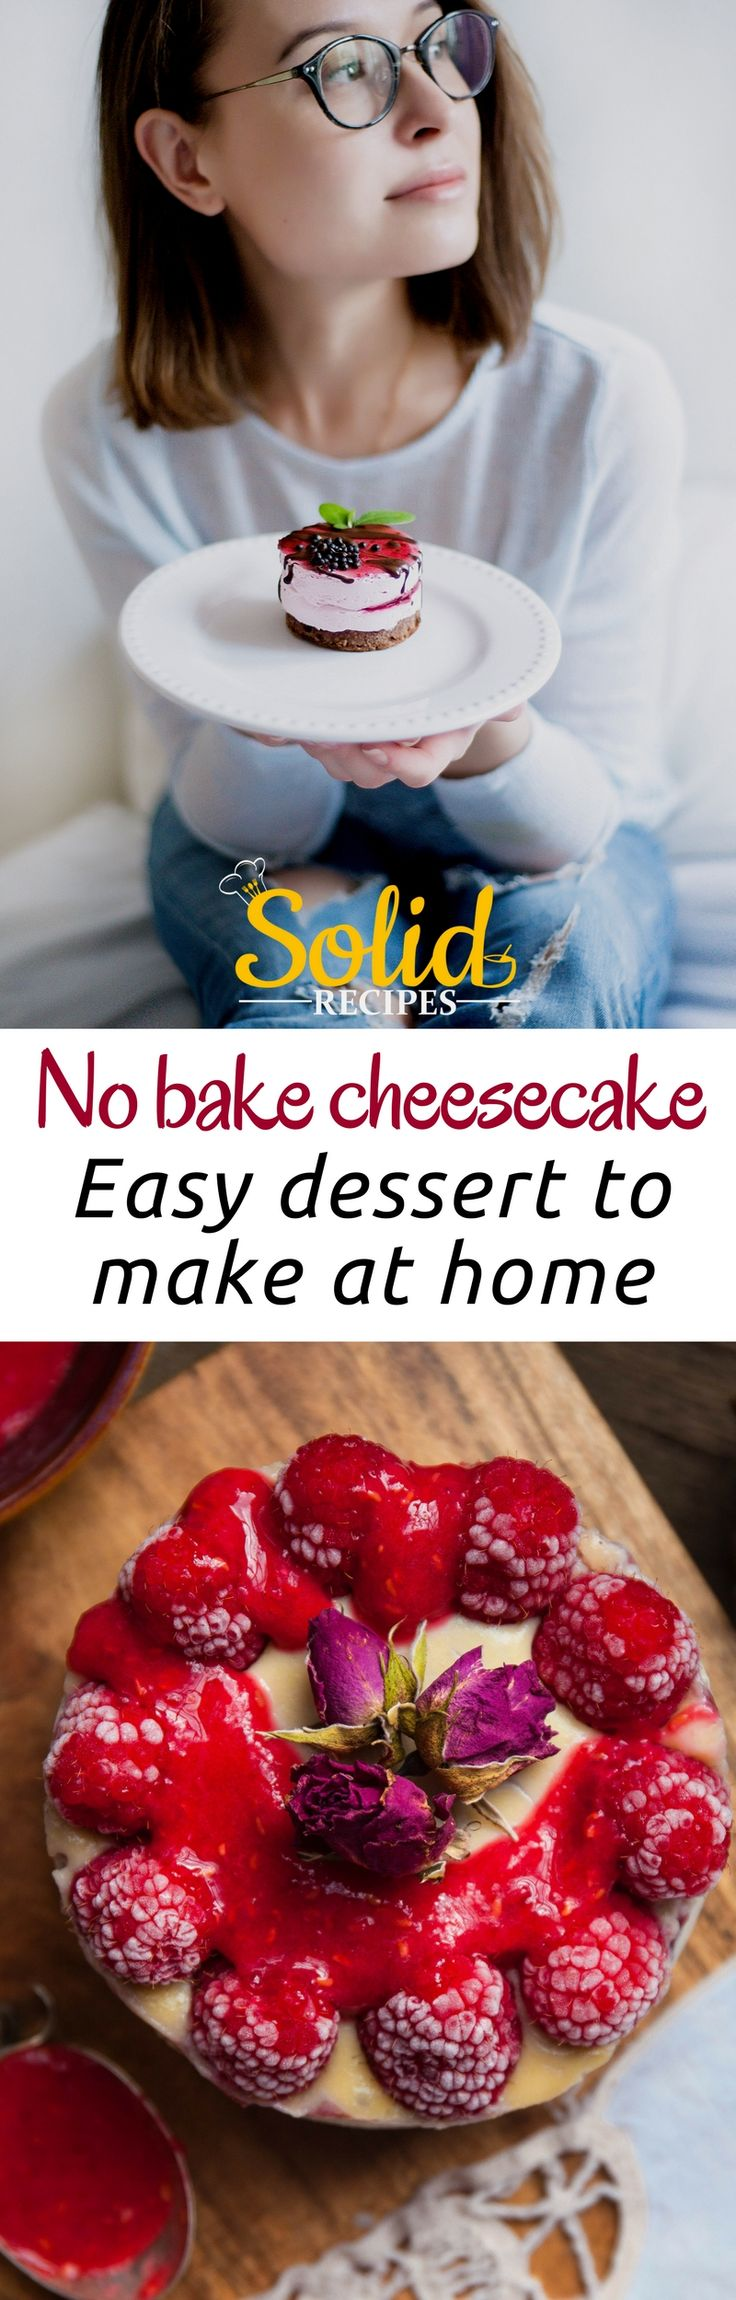 No bake cheesecake – easy dessert to make at home Not always the photos matched the recipe. Cheesecake recipes | cheesecake recipes easy | cheesecake bites | cheesecake recipes classic | cheesecake factory recipes | The Cheesecake Factory | Cheesecake.com | The English Cheesecake Company | Cheesecake Recipes | cheesecake recipes. | CHEESECAKE RECIPES